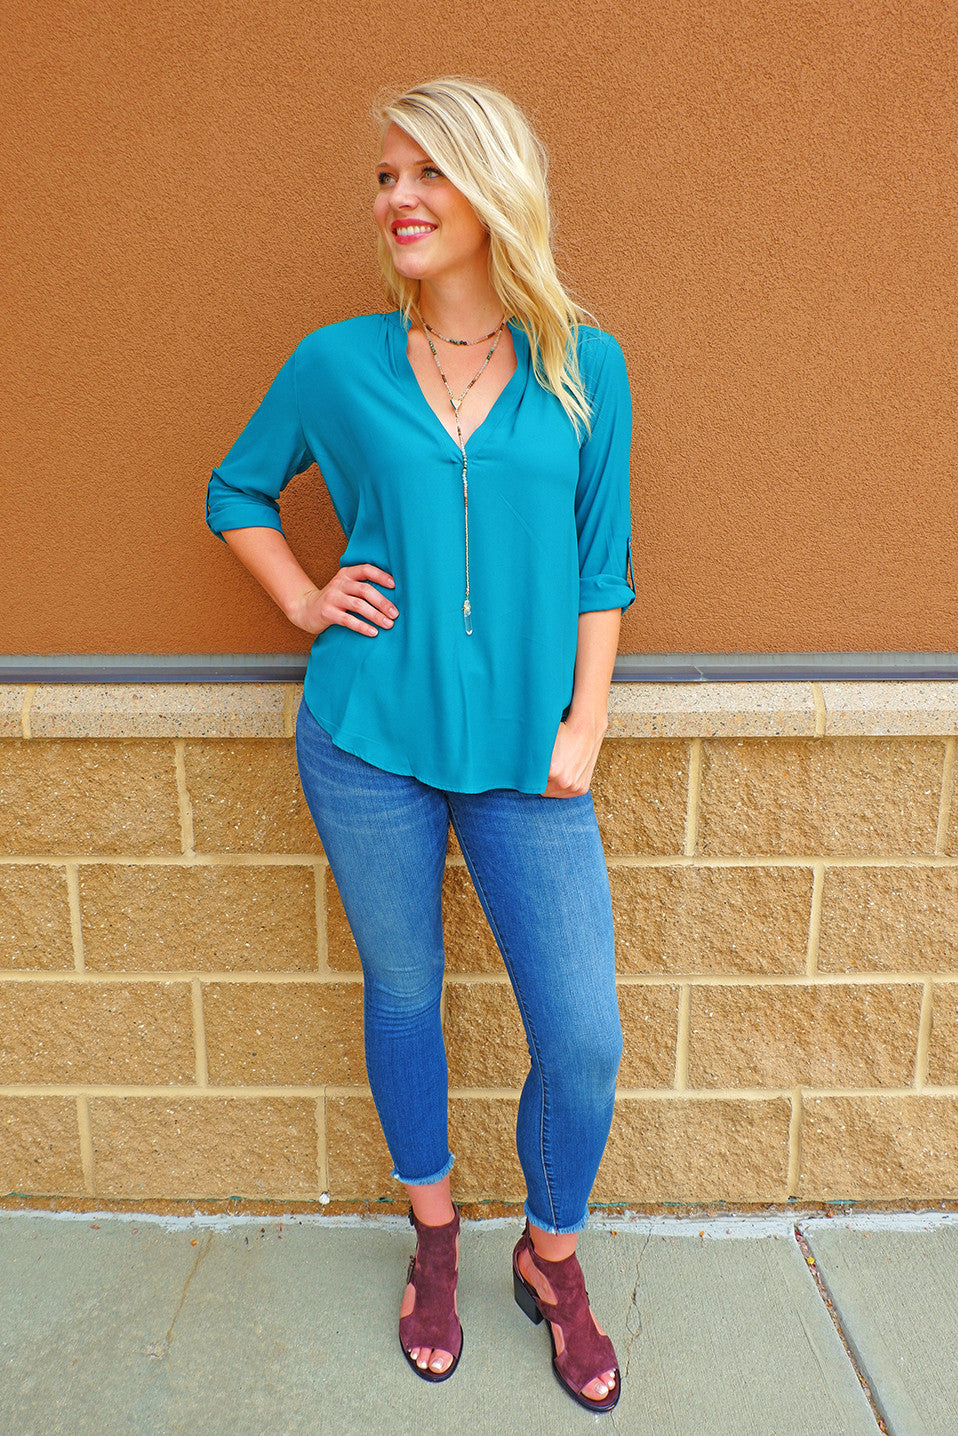 Everglade Green Chiffon V-Neck Top